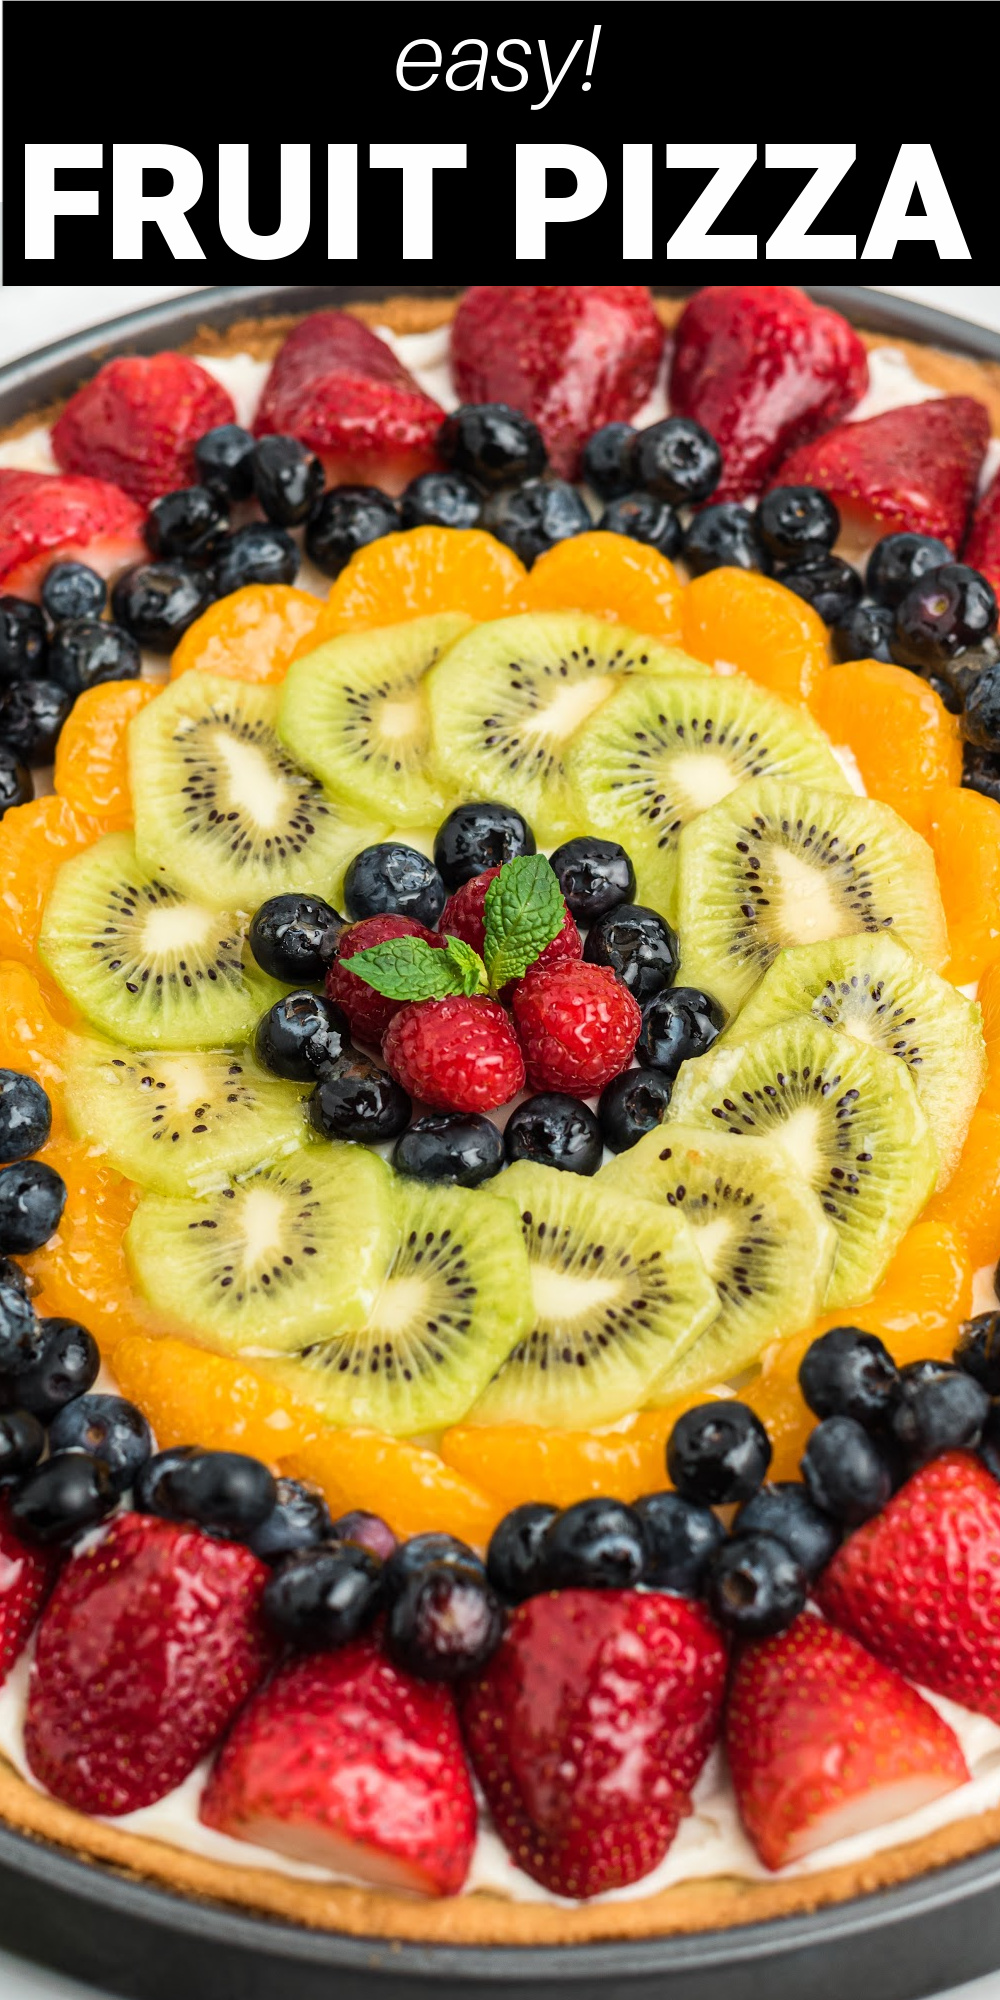 Fruit Pizza is covered bursting with colorful fresh fruit full of naturally sweet flavors on a sugar cookie crust. It has dreamy cream cheese frosting that make this fruit dessert absolutely irresistible.